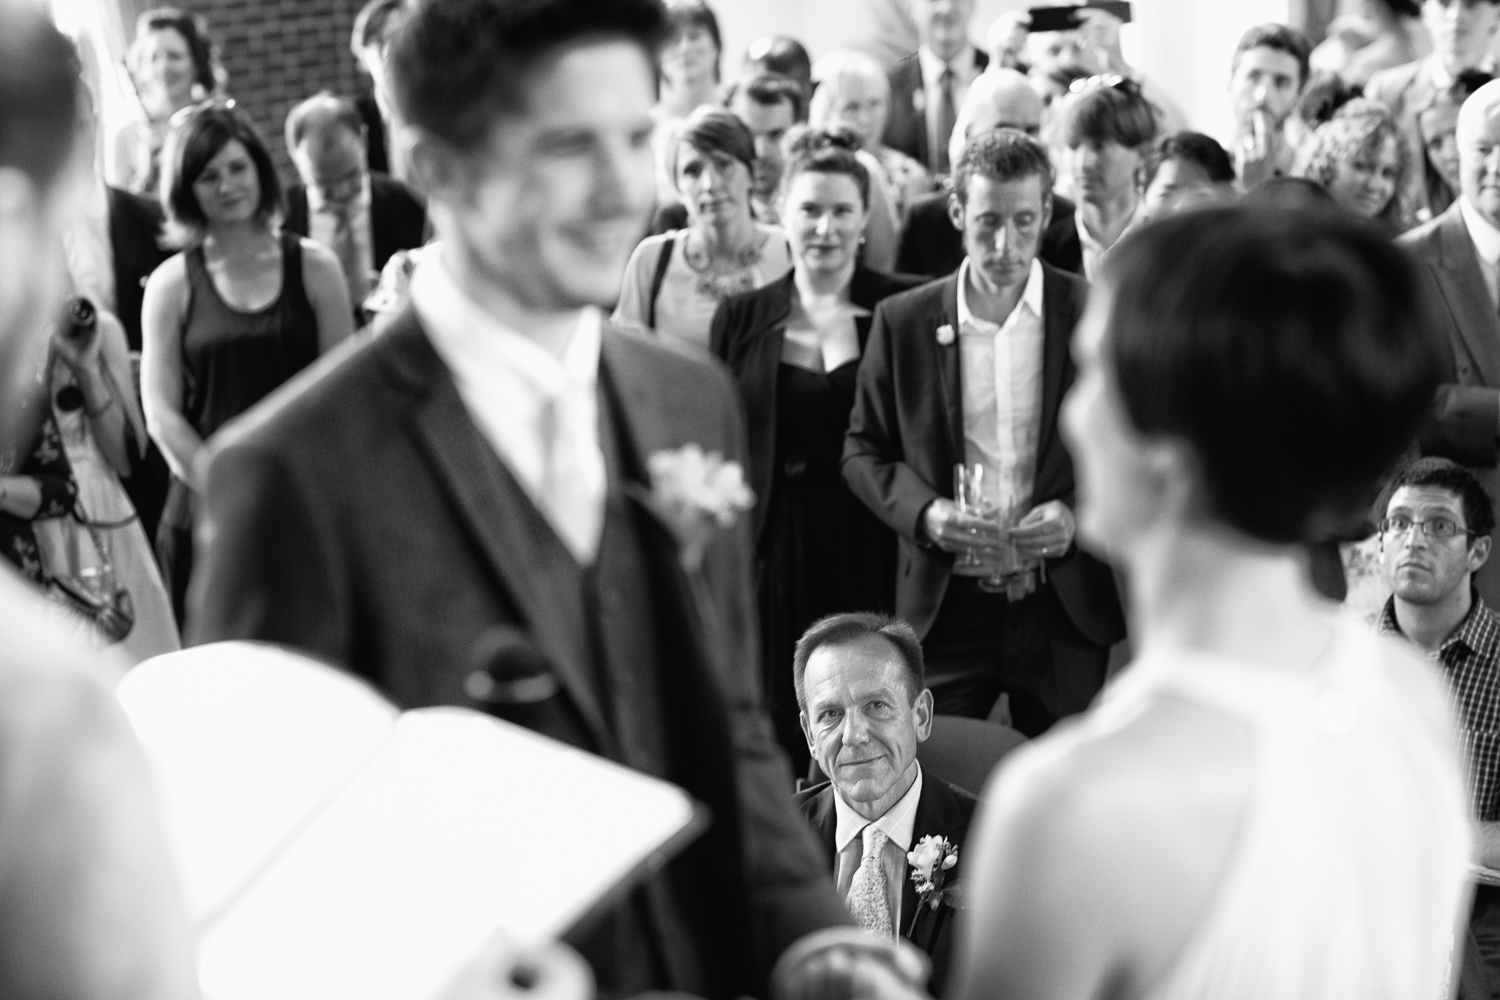 Reportage wedding photographer snaps proud father of bride